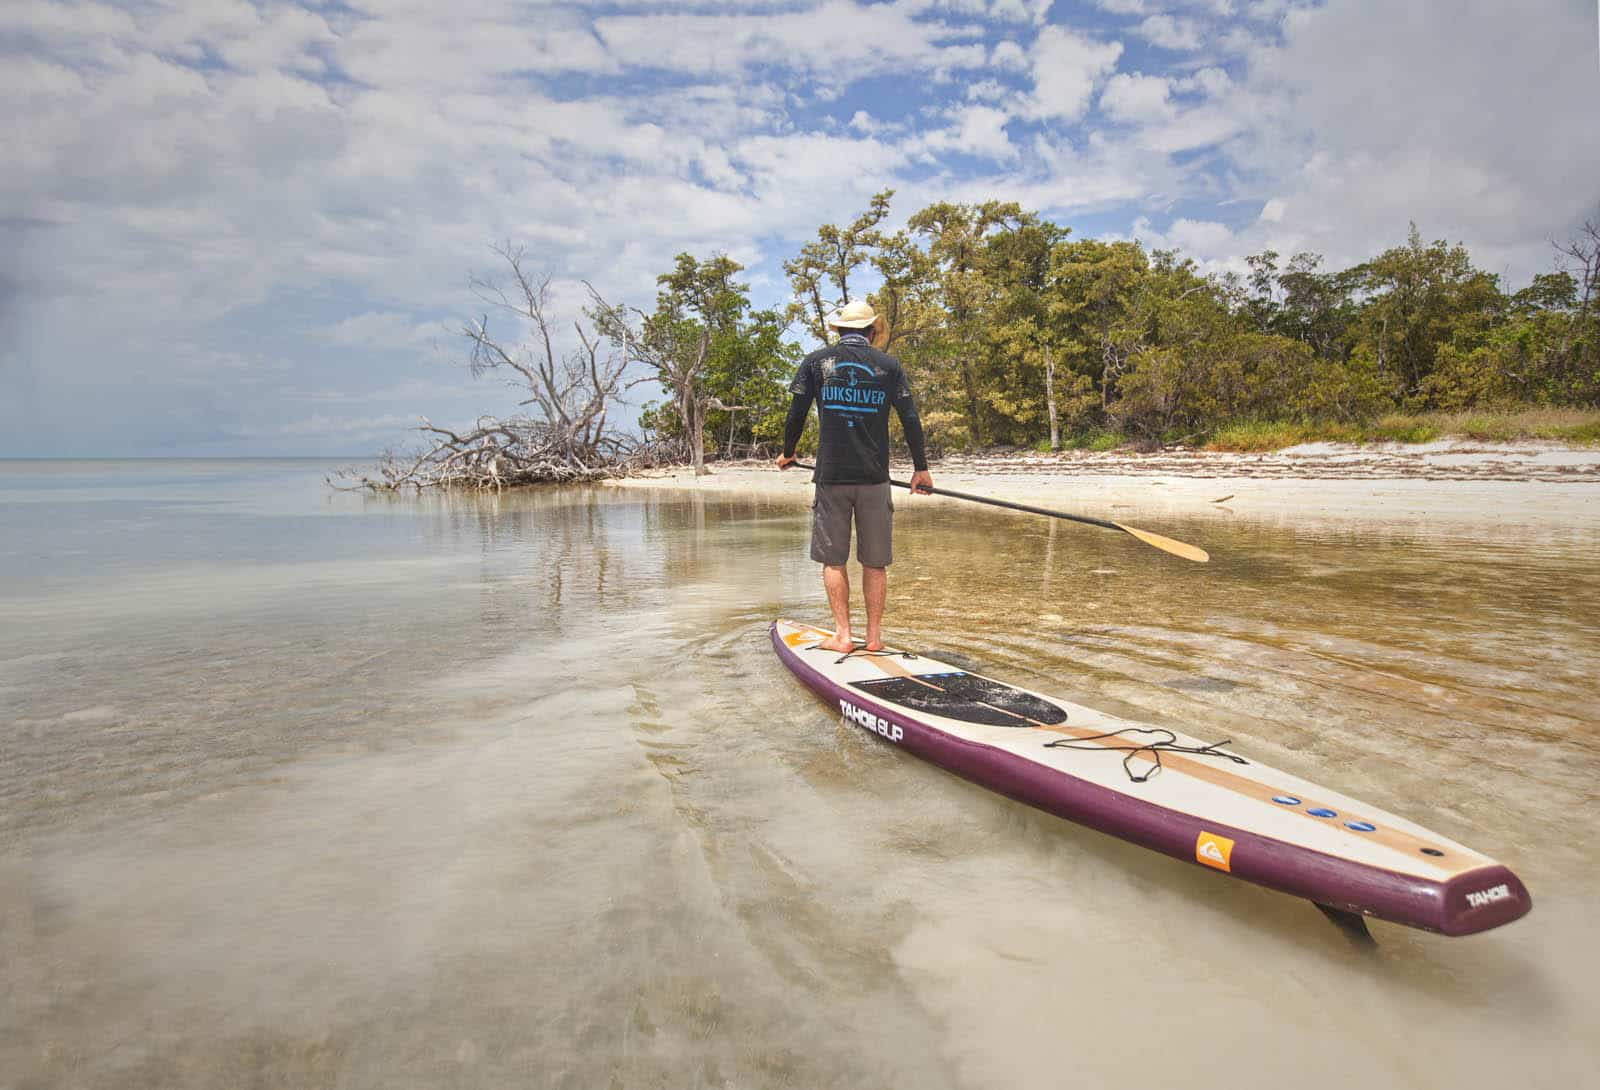 Justin Riney on his paddle board in Key West, Florida.